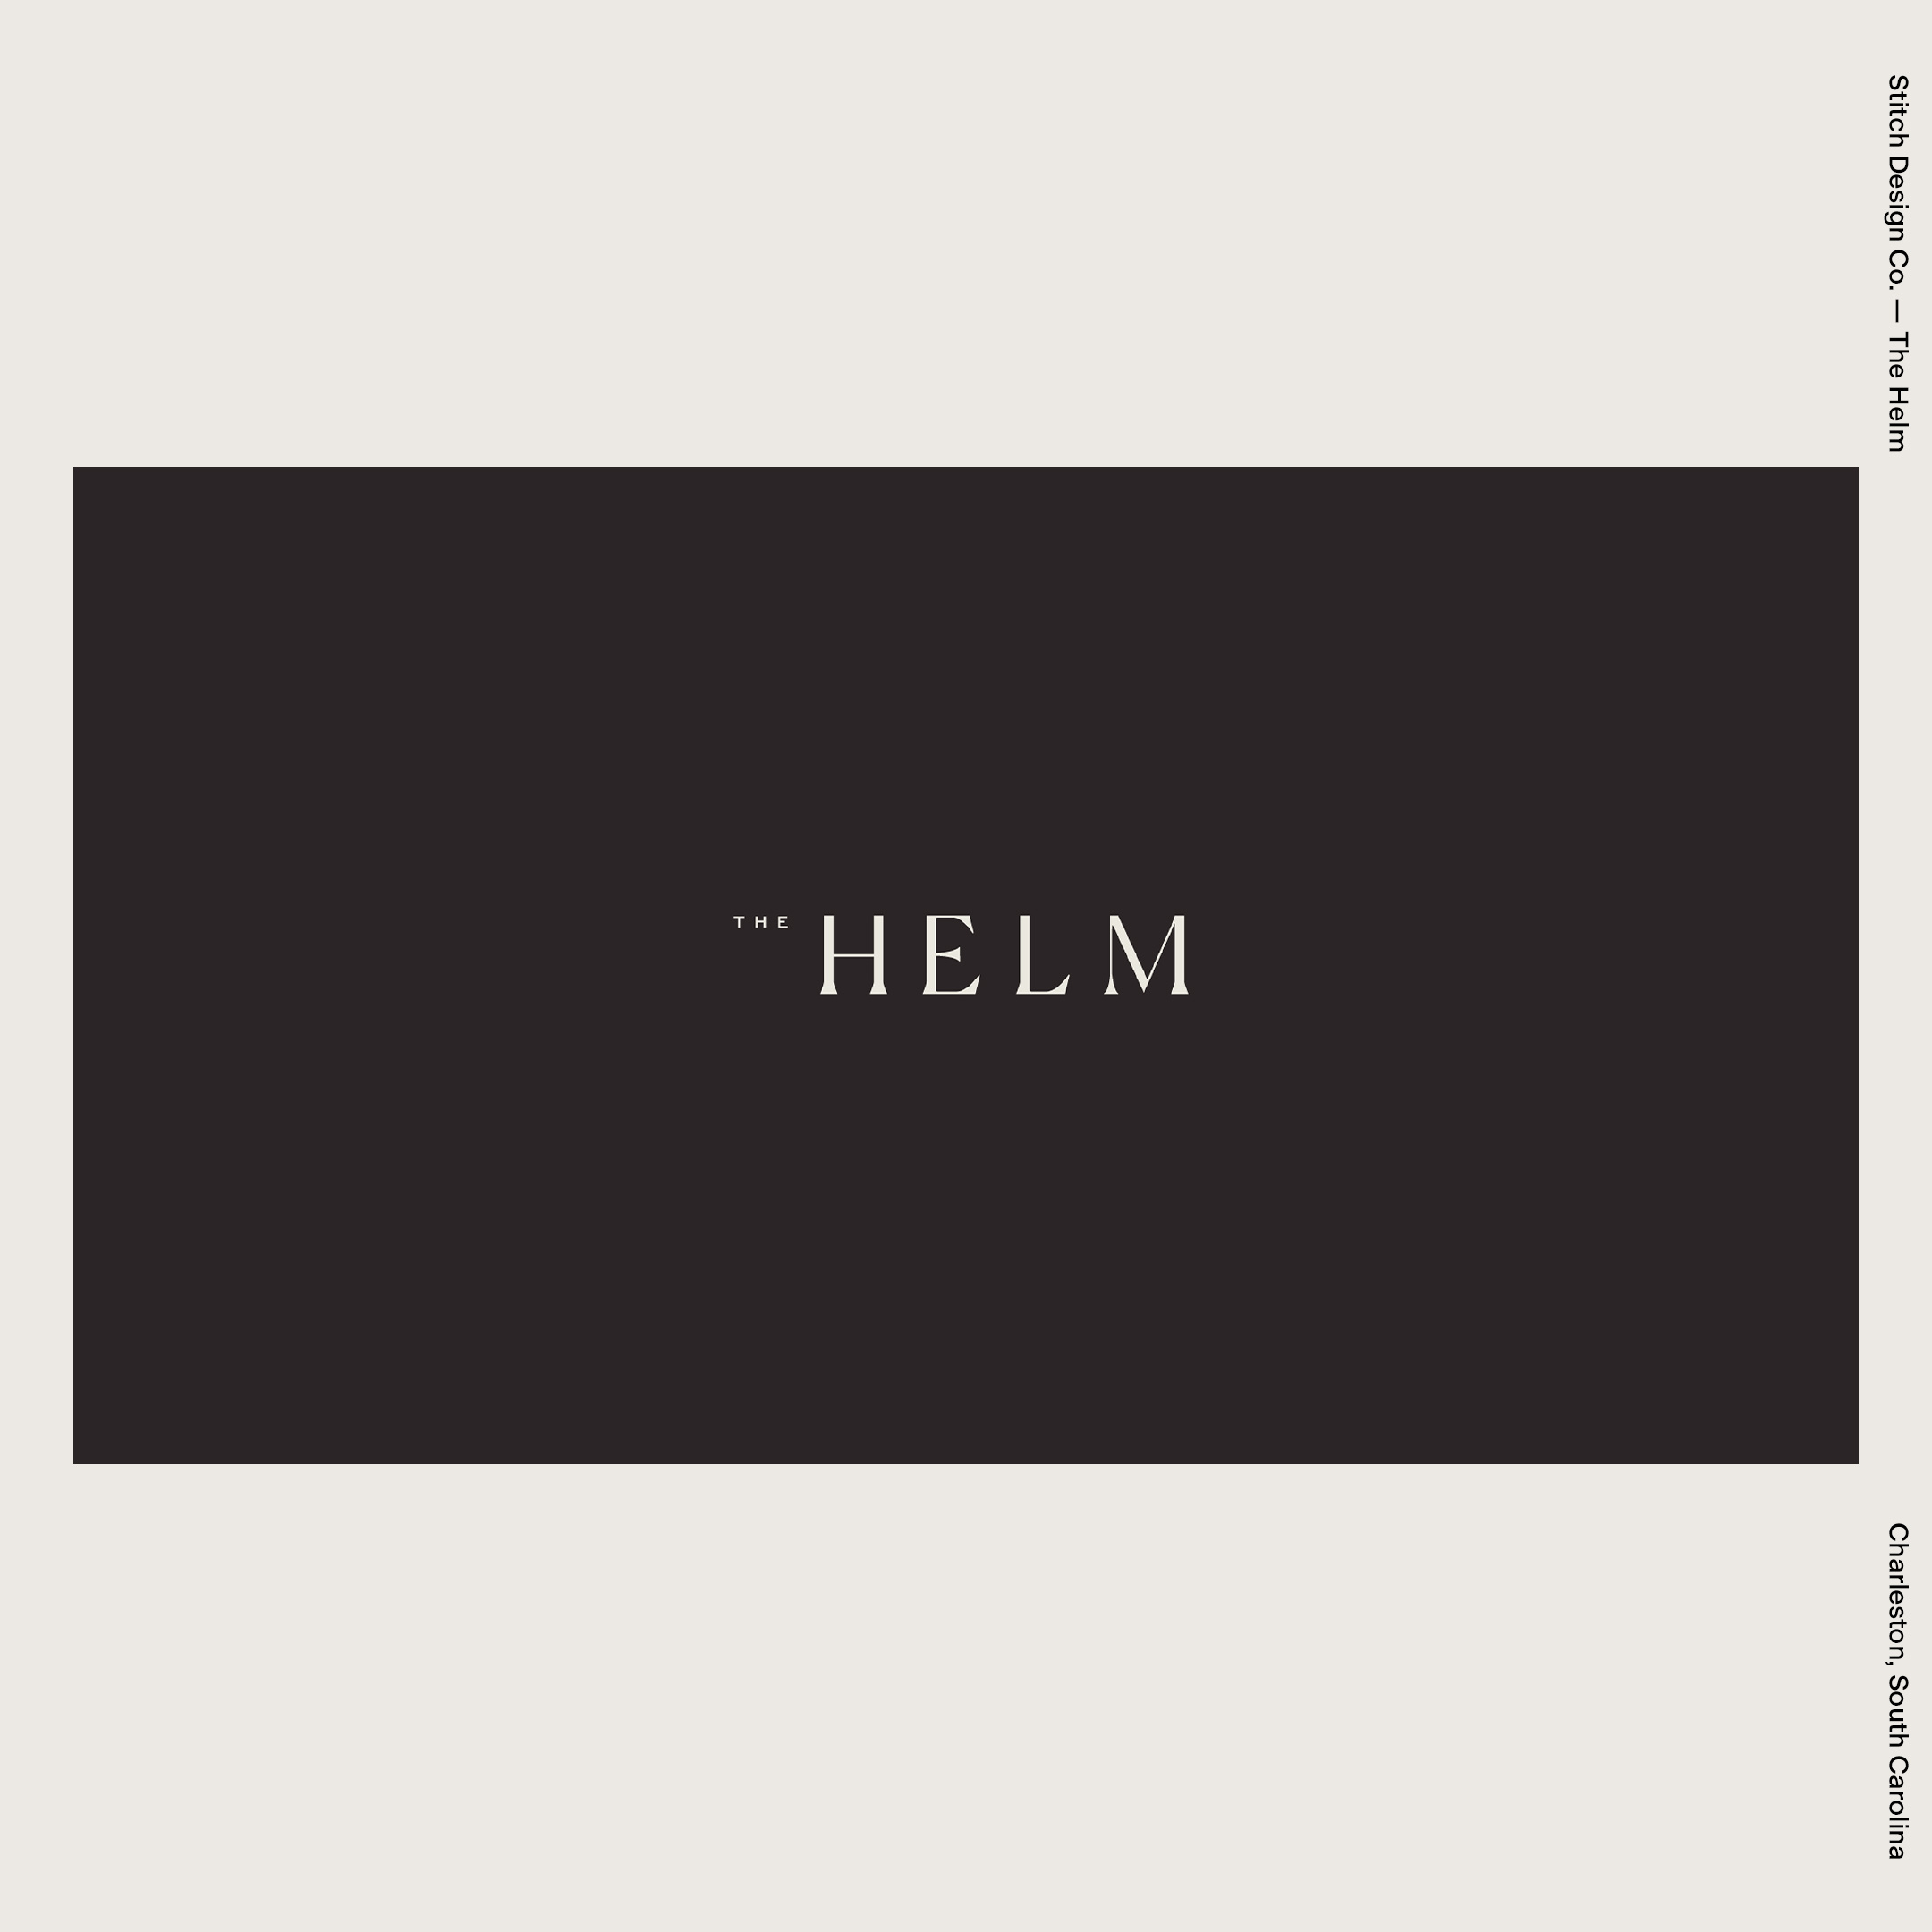 Stitch Design Co. — The Helm